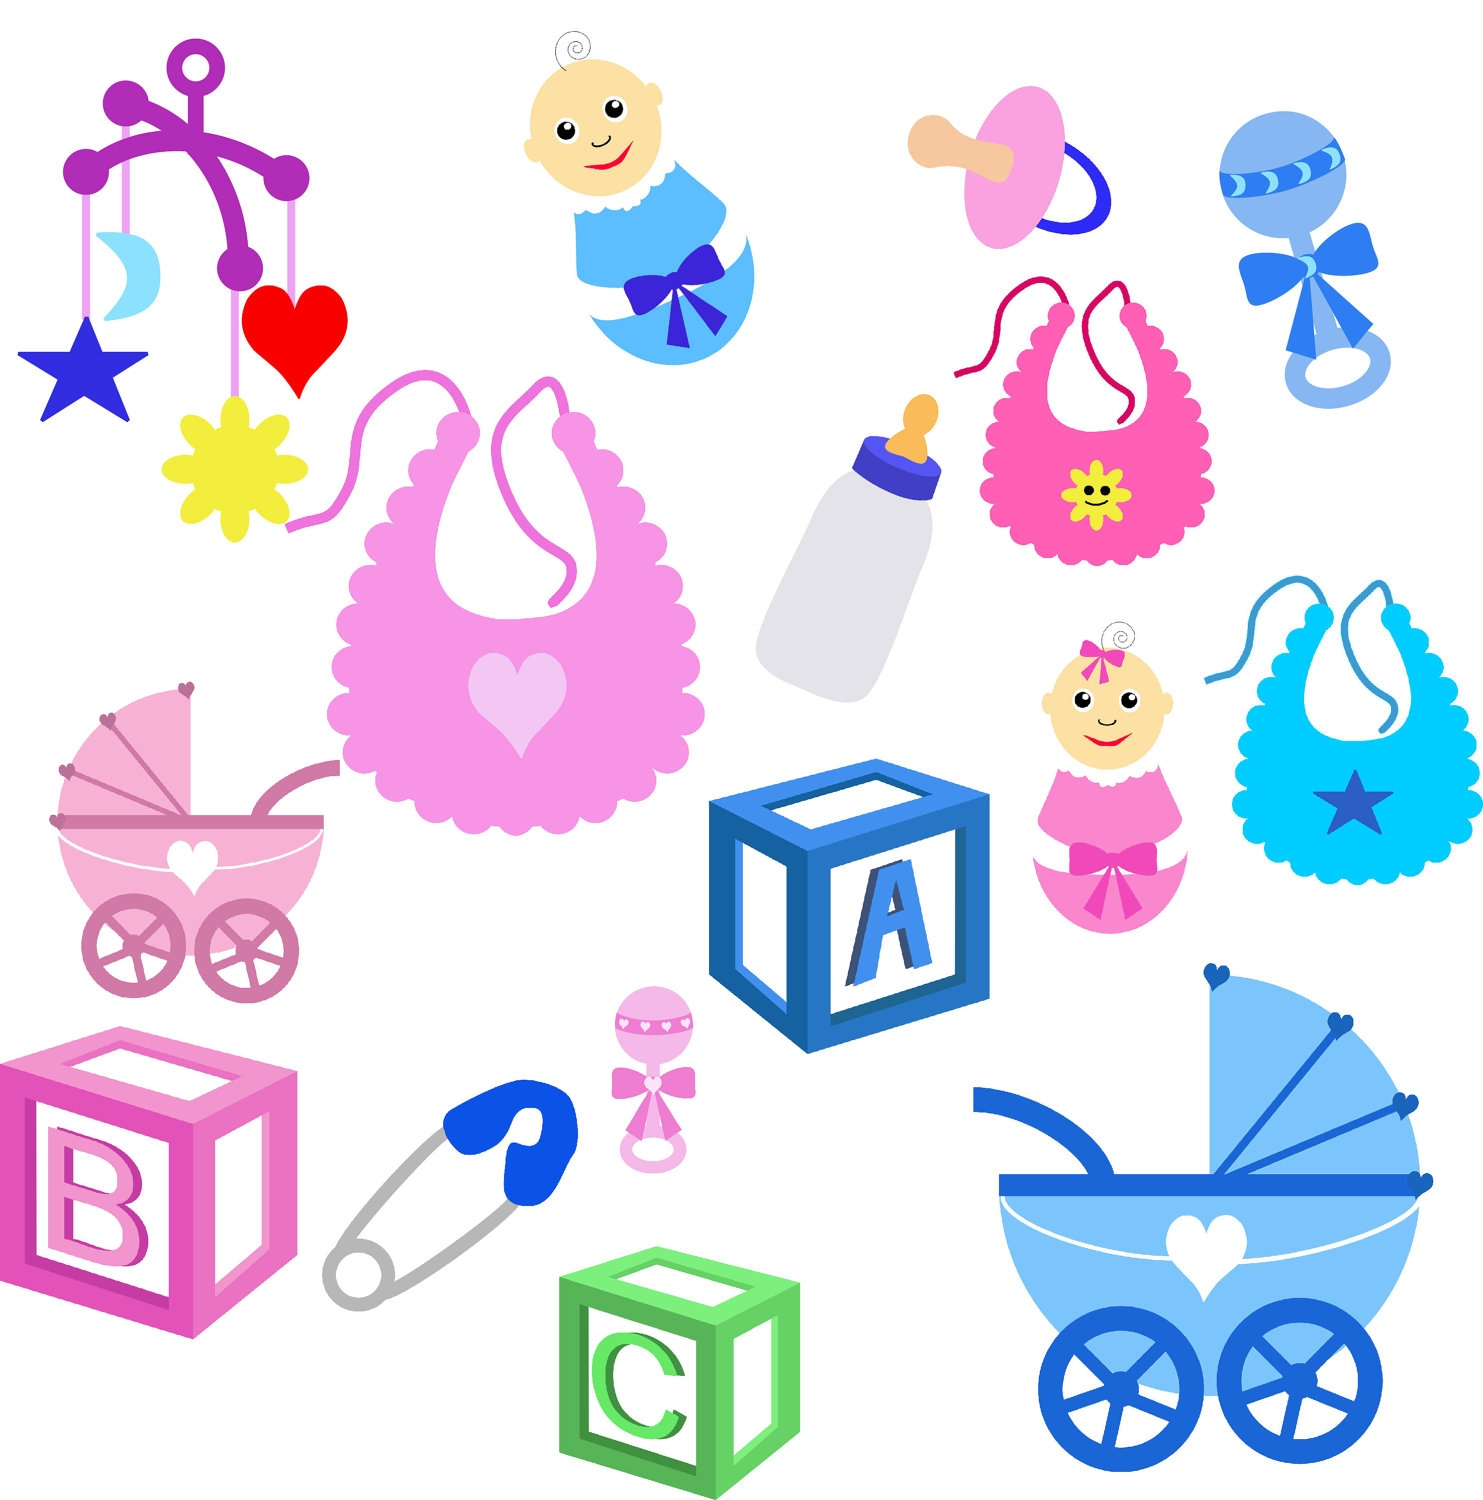 Baby girl things clipart clip art royalty free stock Clipart baby things - ClipartFest clip art royalty free stock